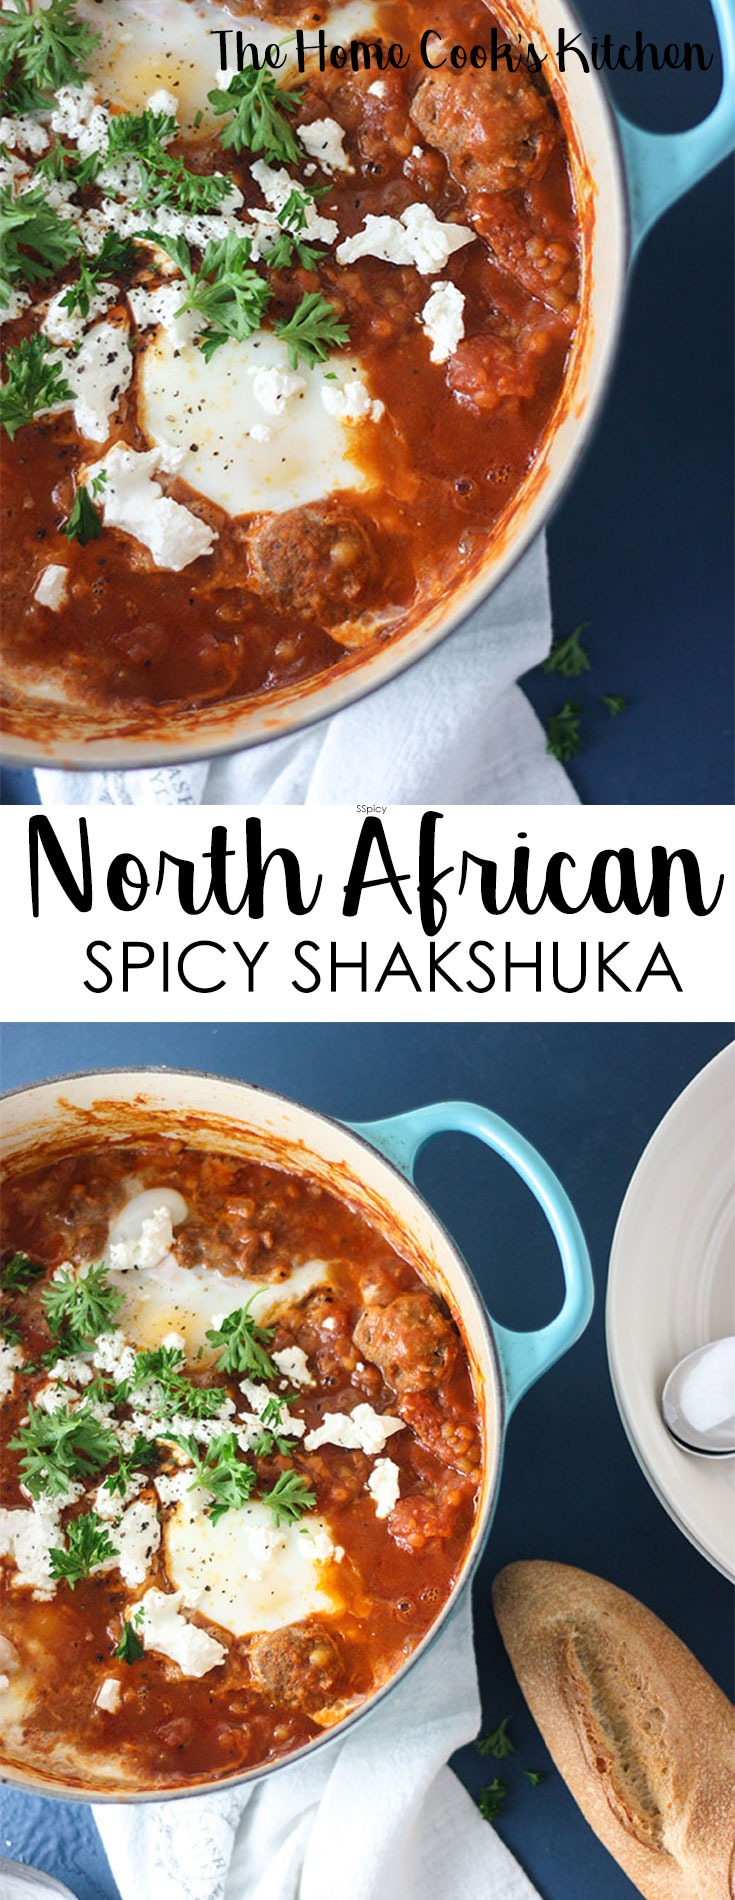 Perfect for lazy weekends, or when you need some comfort food. This North African Spicy Shakshuka is a hearty meatball stew, with spicy harissa tomato sauce. Great for breakfast, brunch or dinner! #shakshuka #bakedeggs #dinnerrecipe